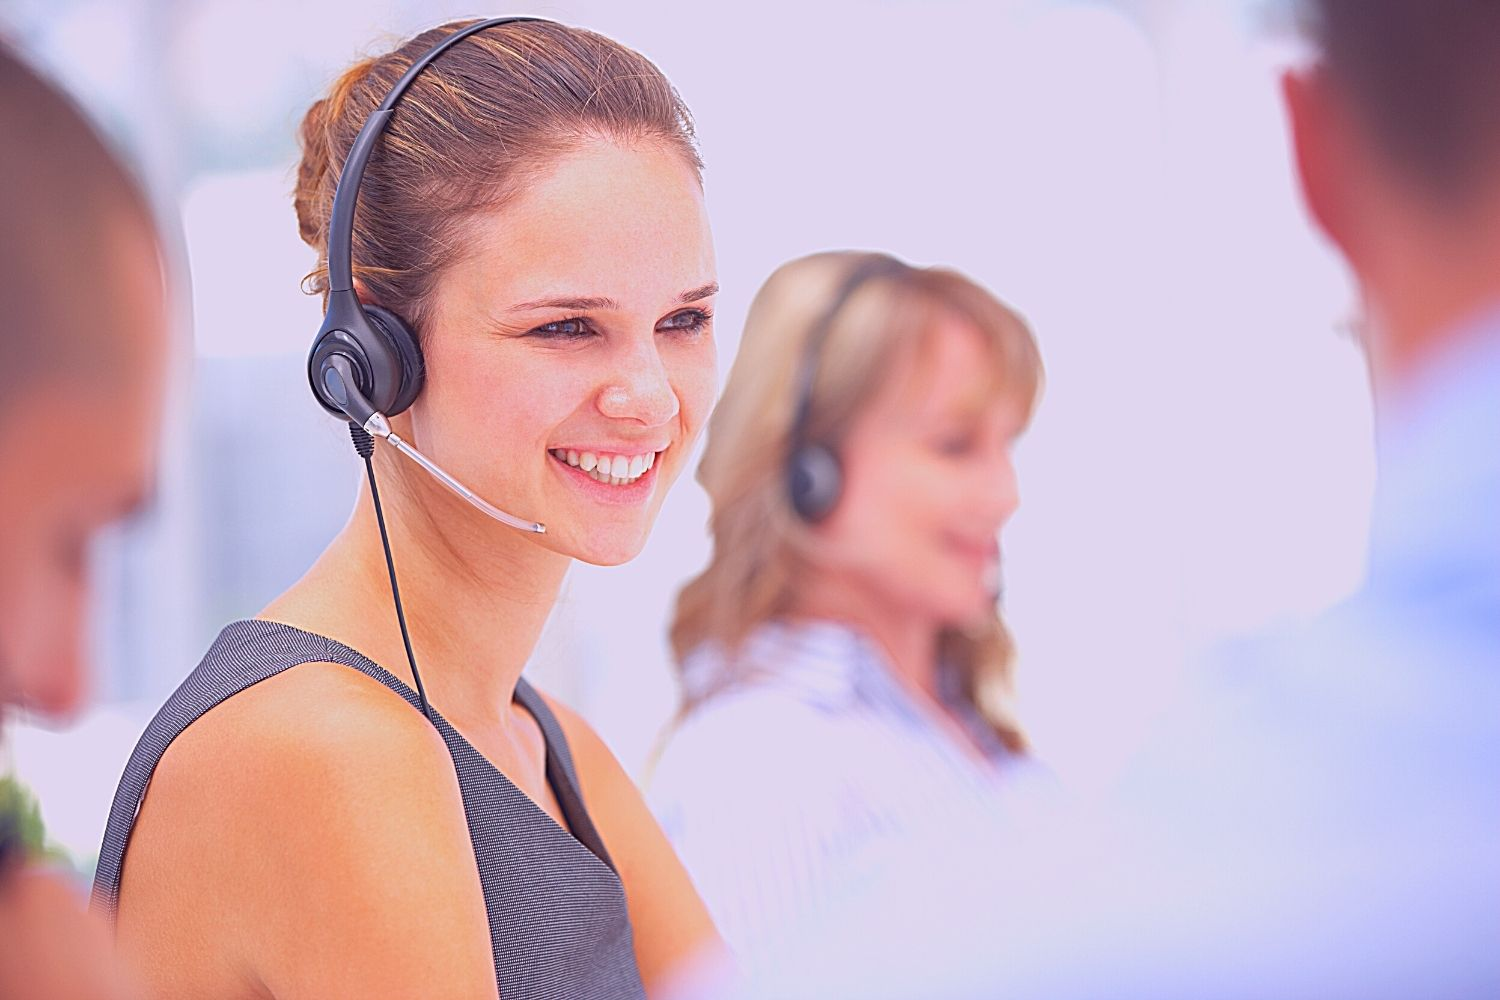 7 Traits Of Successful Inside Sales Rep